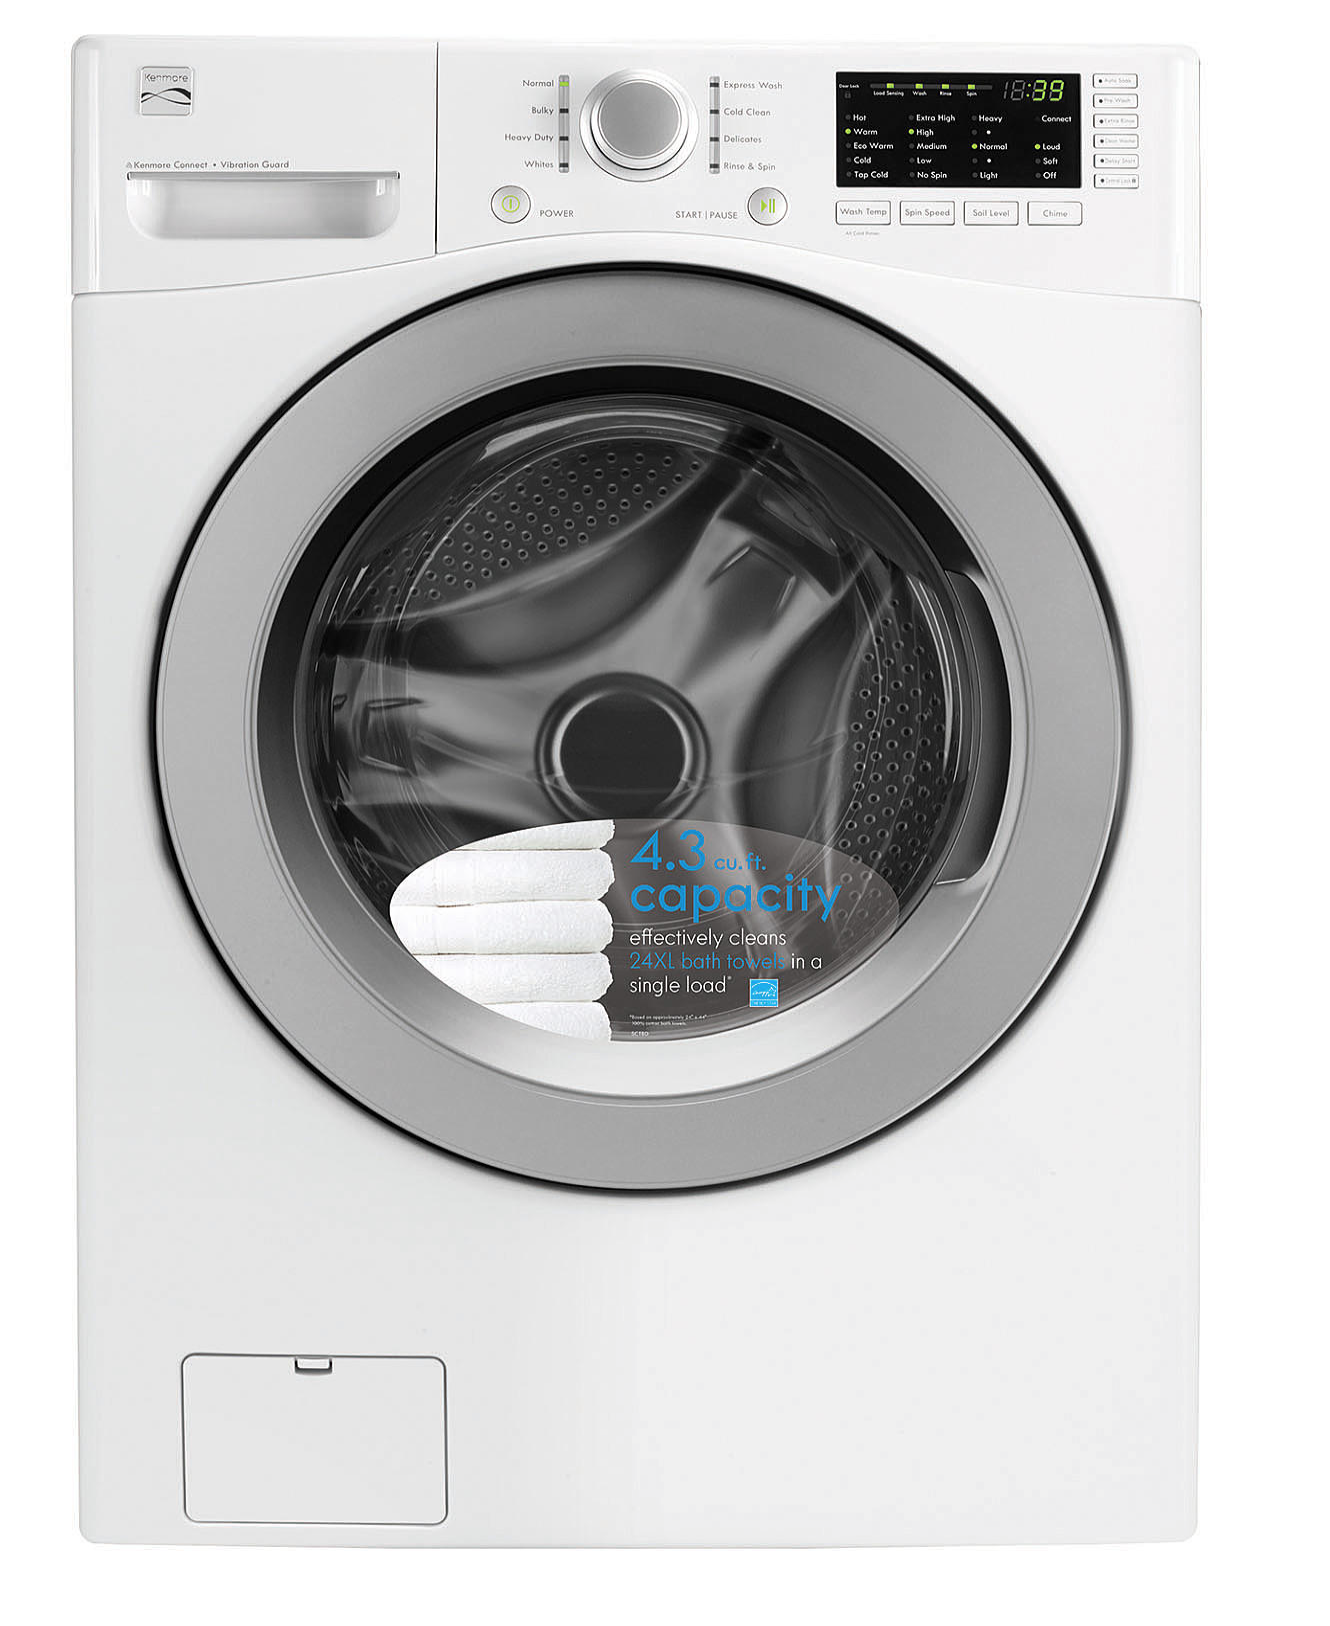 Kenmore #4116 washing machine